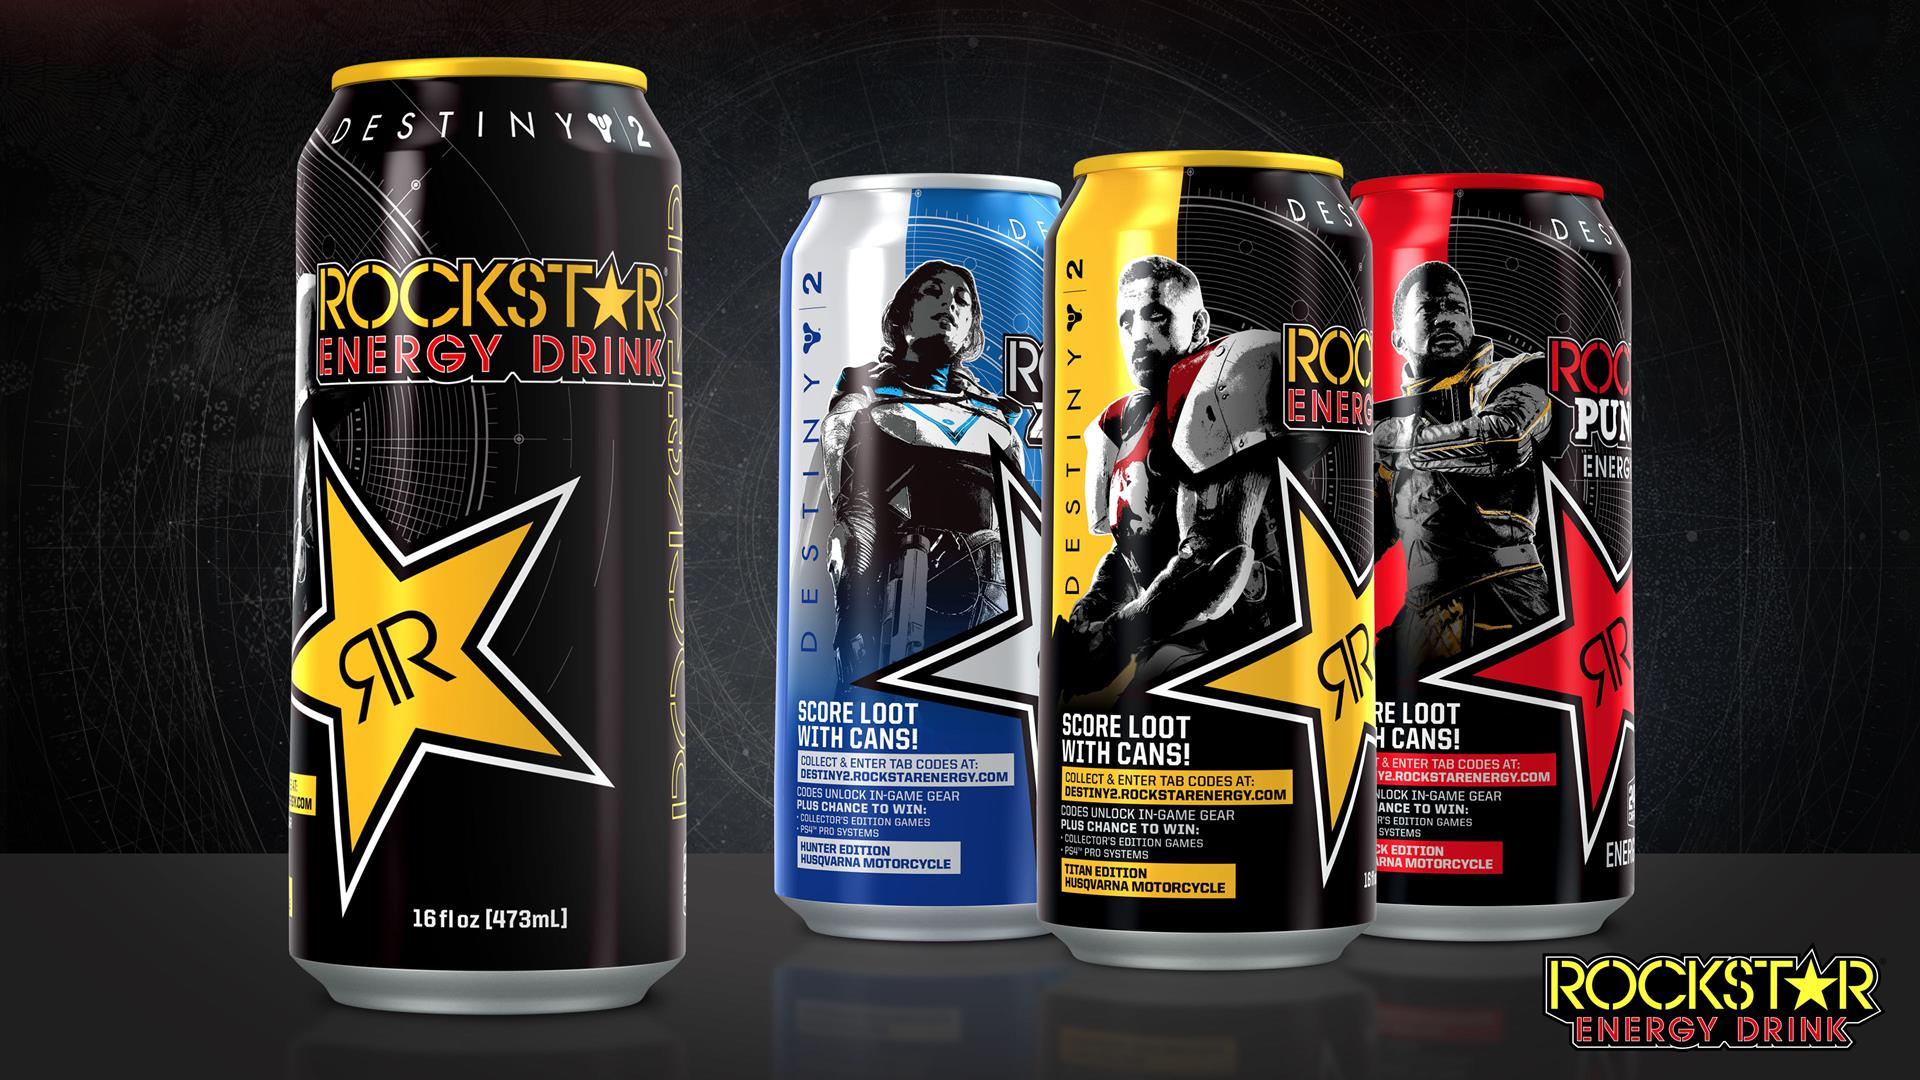 How Destiny 2's Rockstar Energy Drink Rewards Work